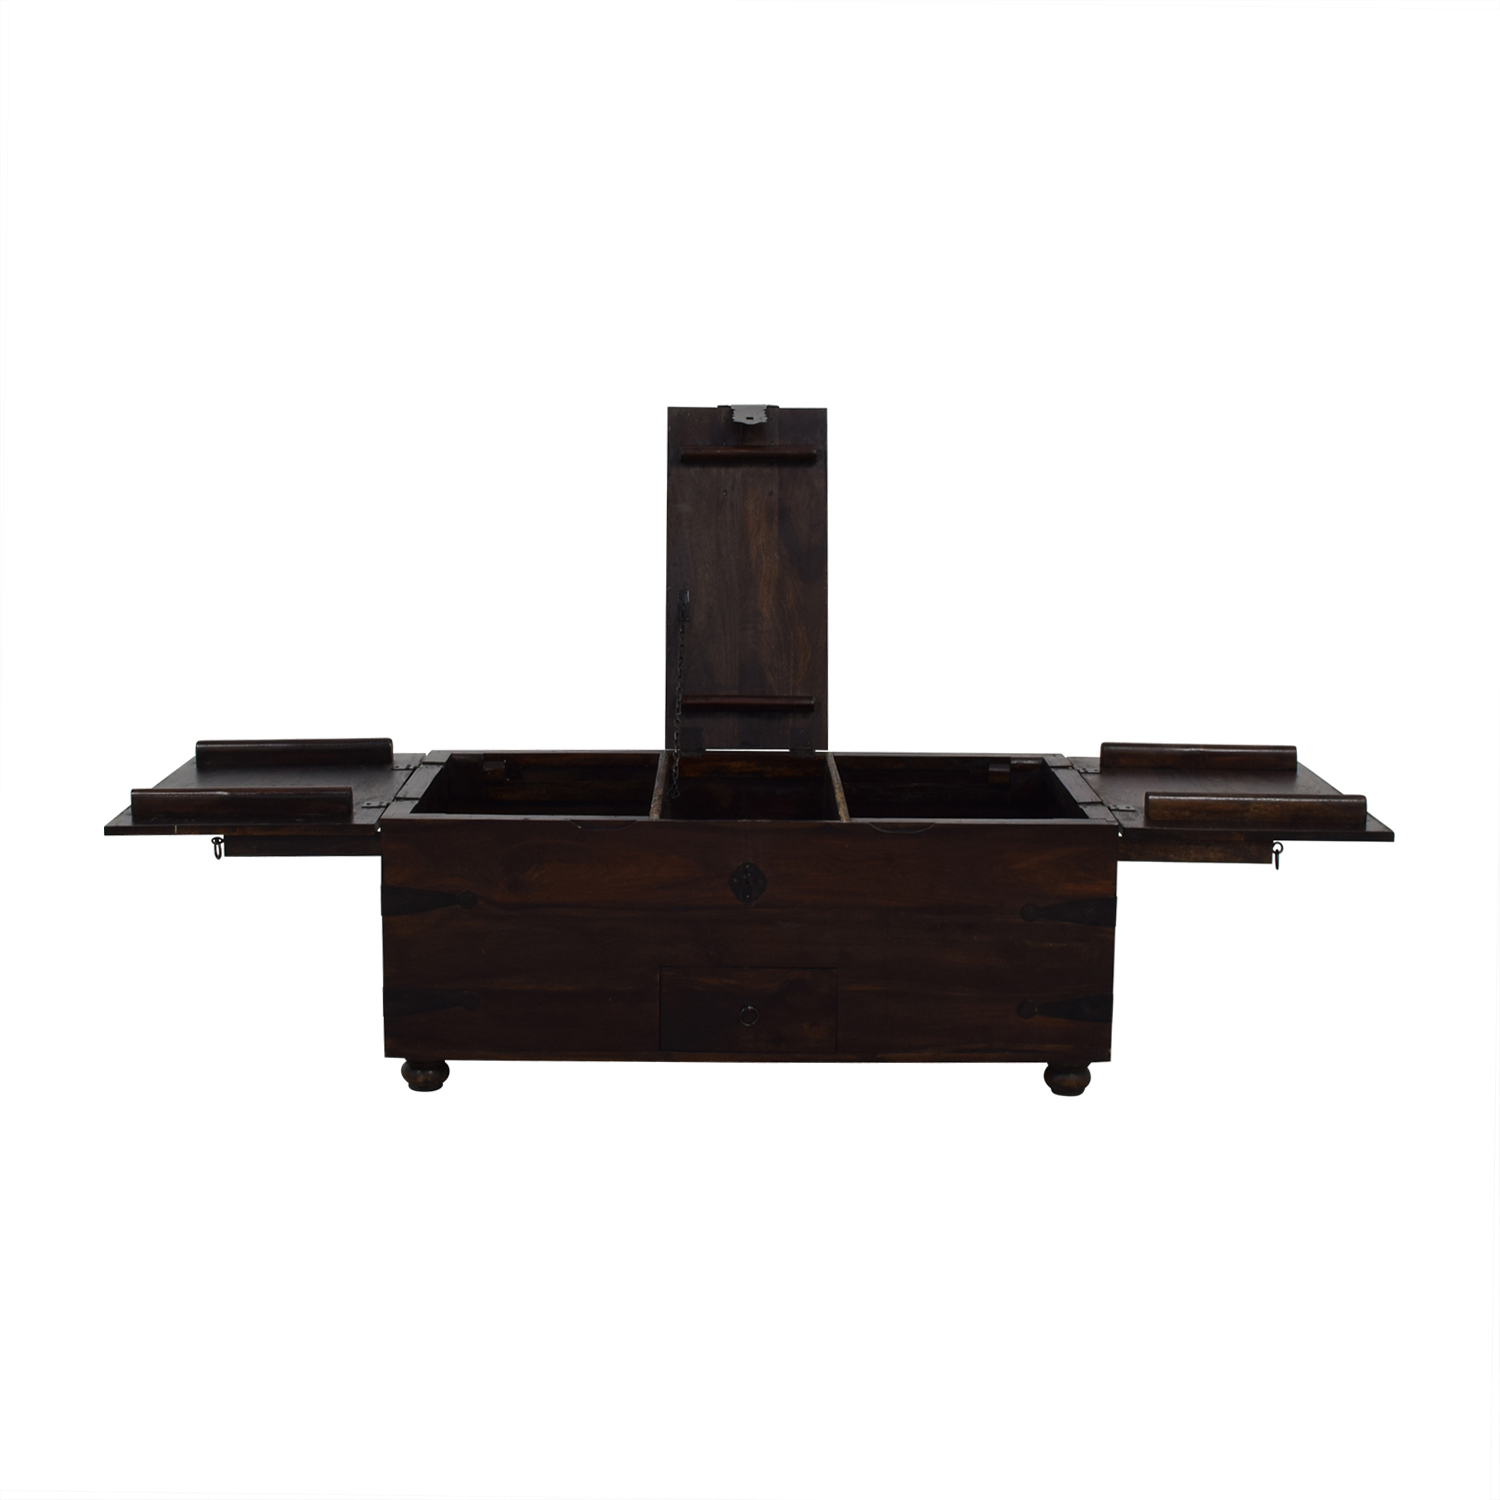 Crate & Barrel Crate & Barrel Trunk Storage Coffee Table coupon